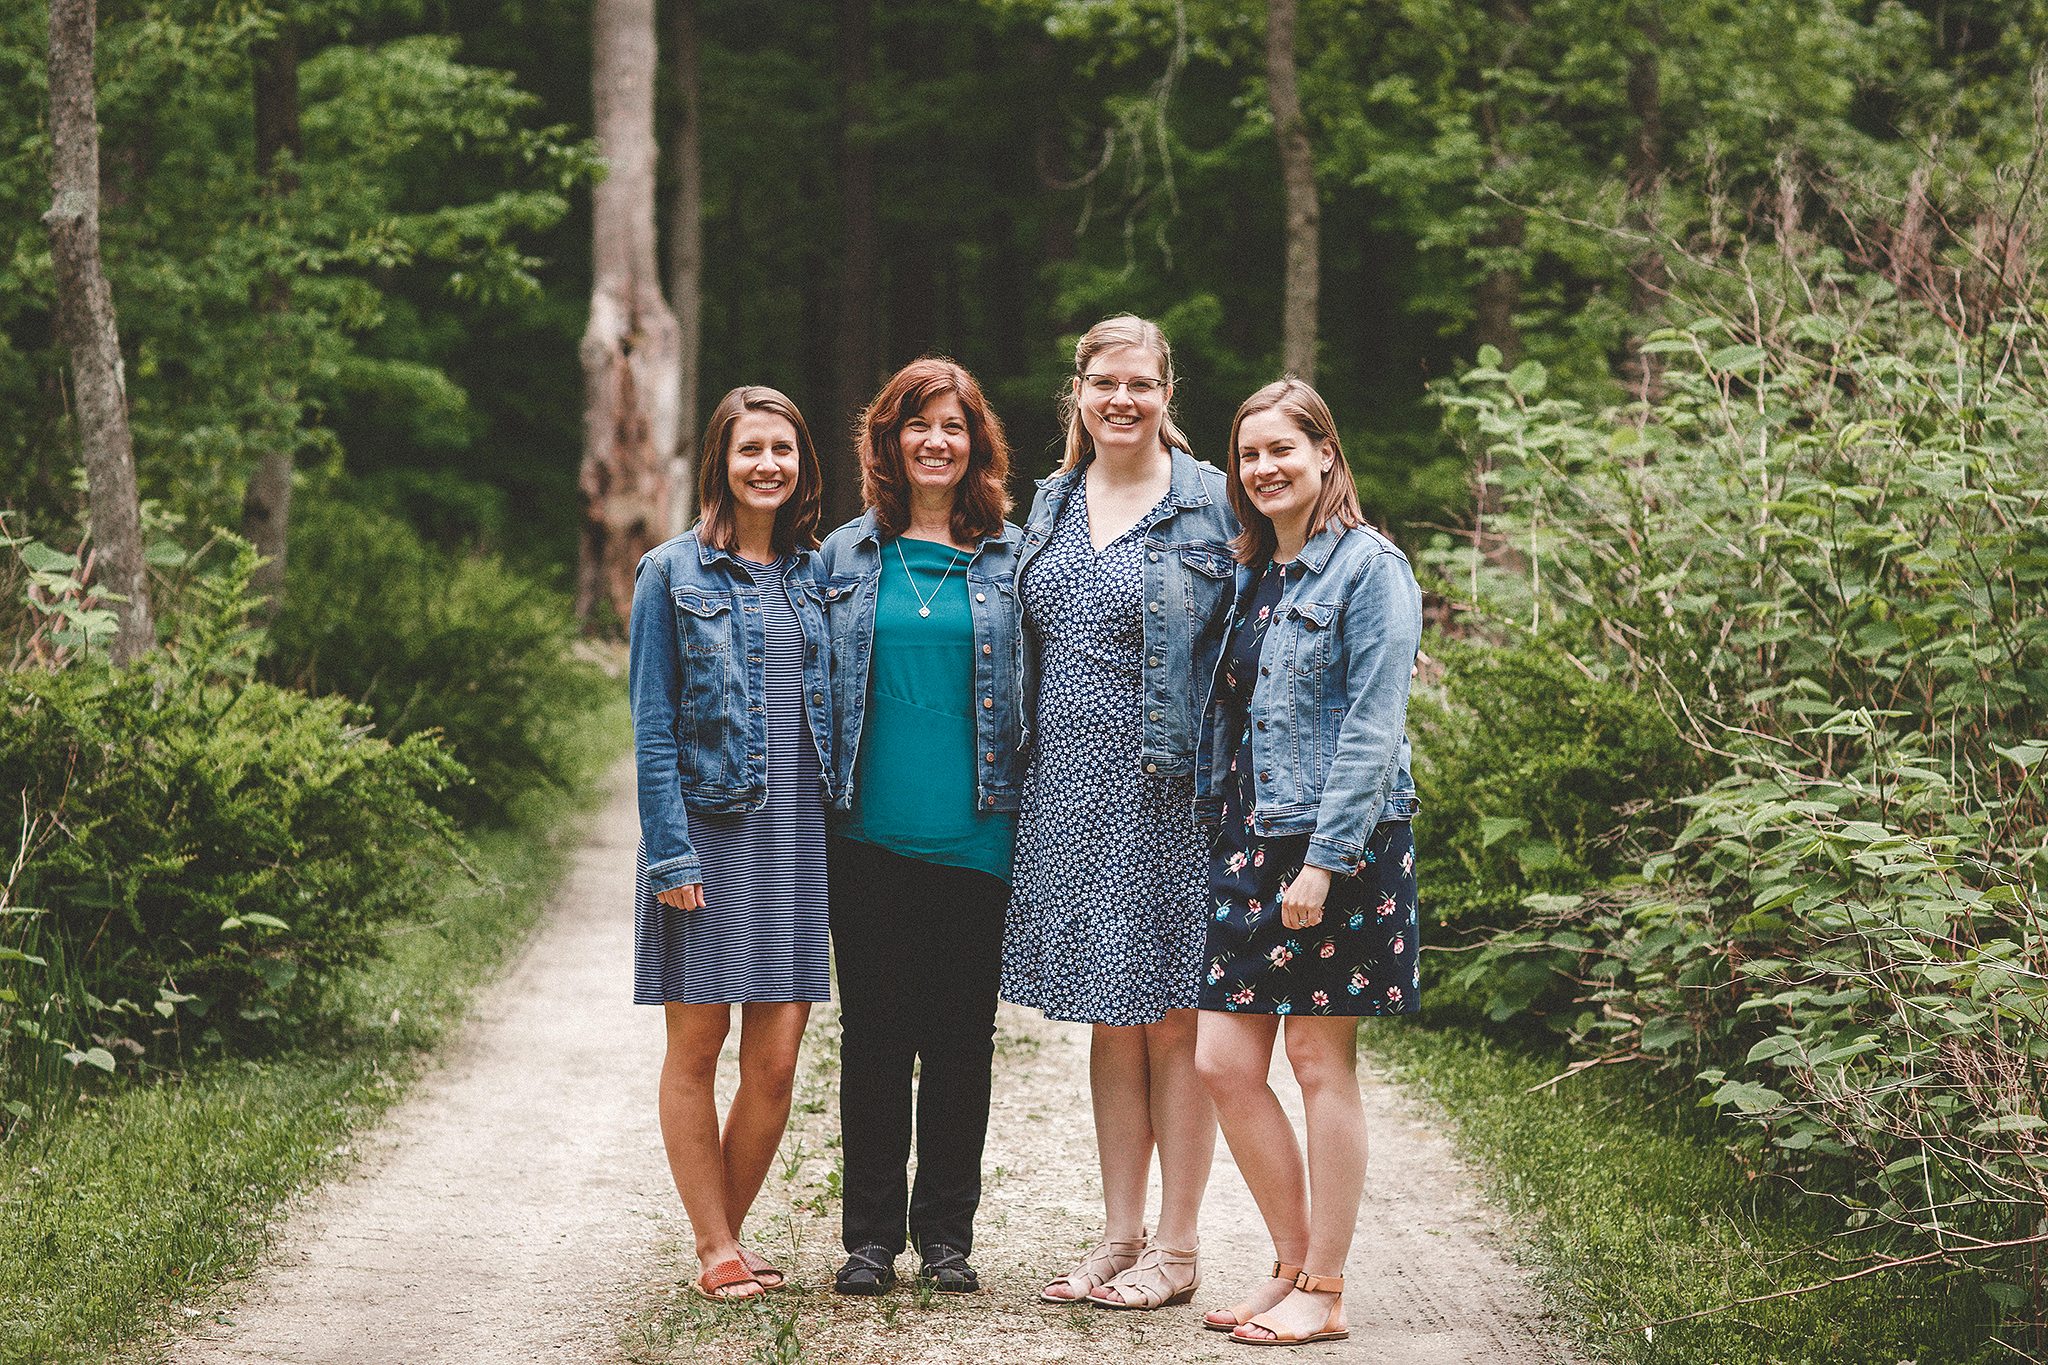 Mother & adult daughters | forest photoshoot | sheboygan, WI family photographer | Chrissy Deming Photography